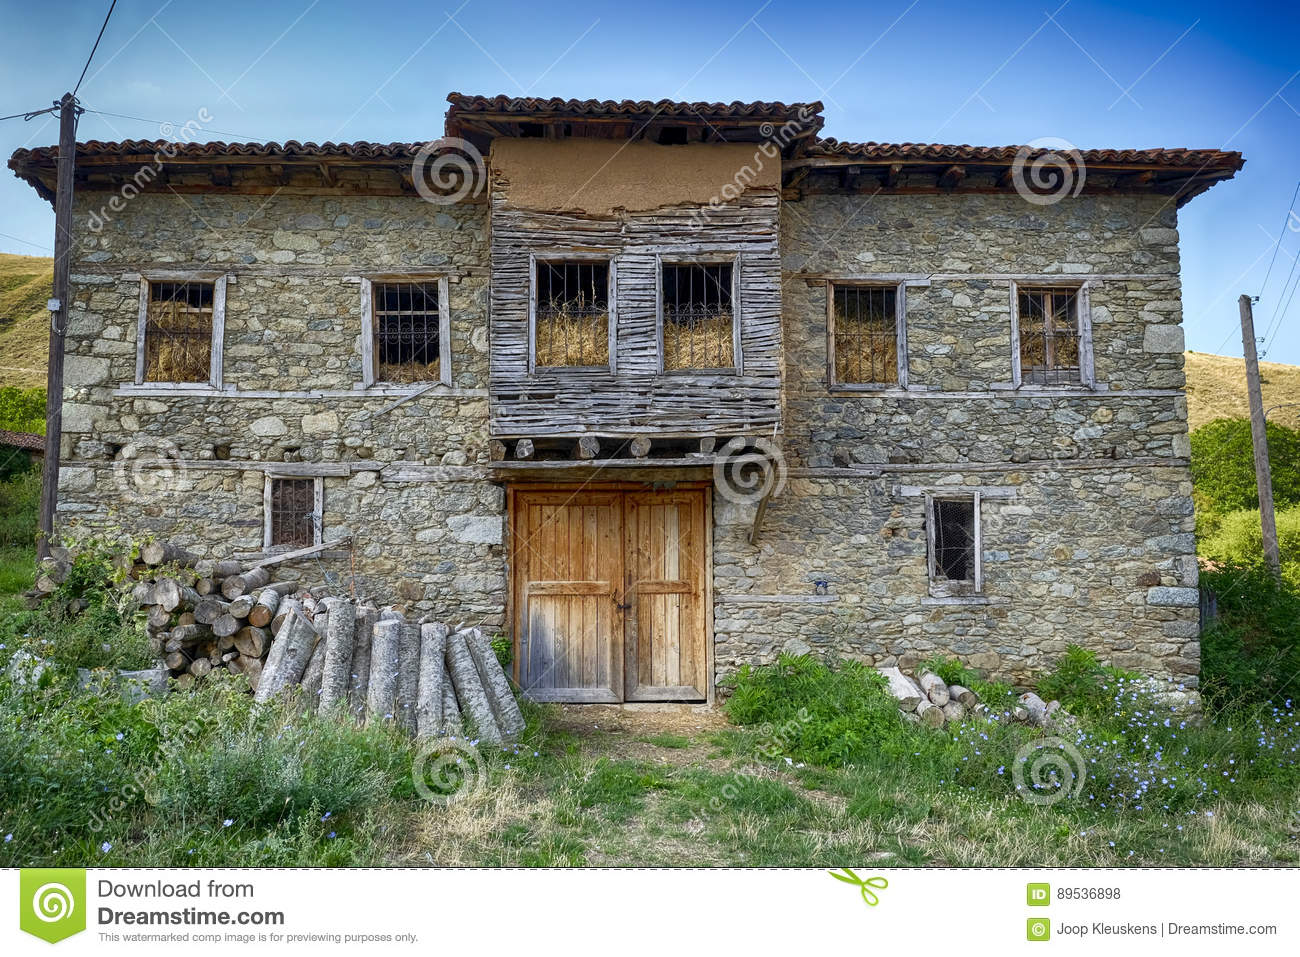 Dilapidated Old House Filled With Straw Stock Photo - Image of ... on